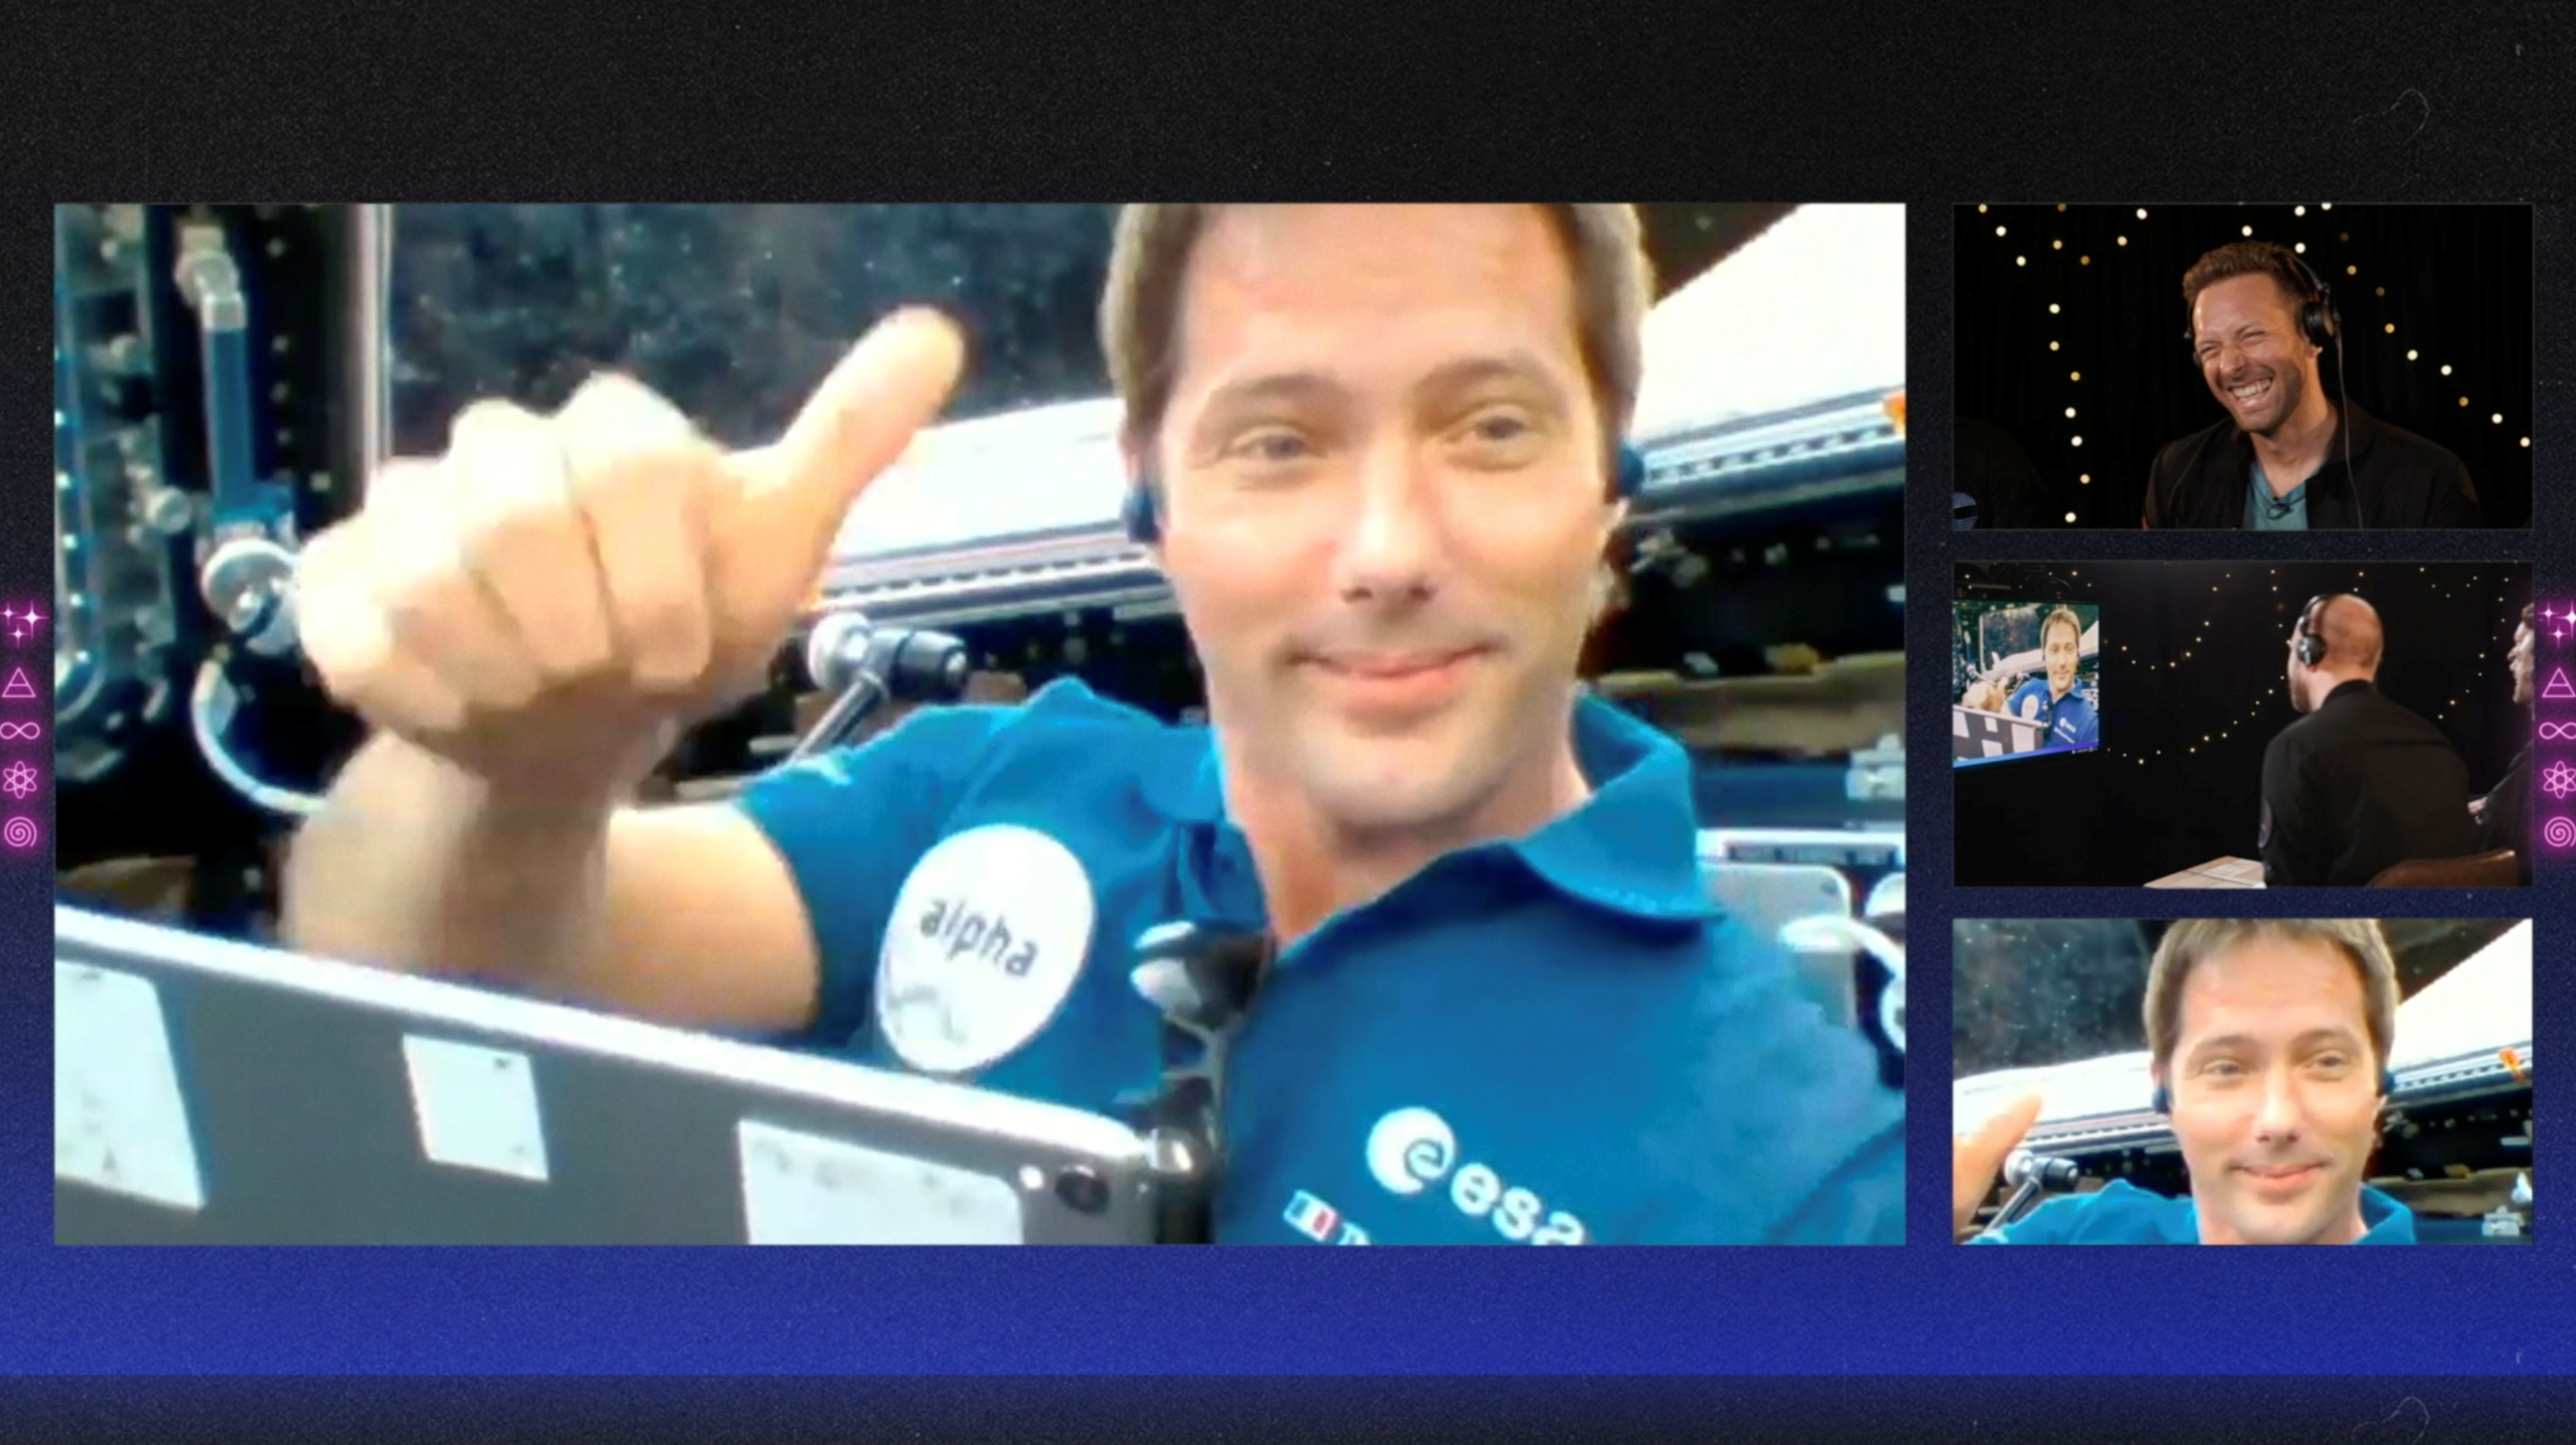 French ESA astronaut Thomas Pesquet gestures during an interview with members of Coldplay, in this still image from an undated handout video obtained by REUTERS on May 6, 2021. Coldplay/Handout via REUTERS